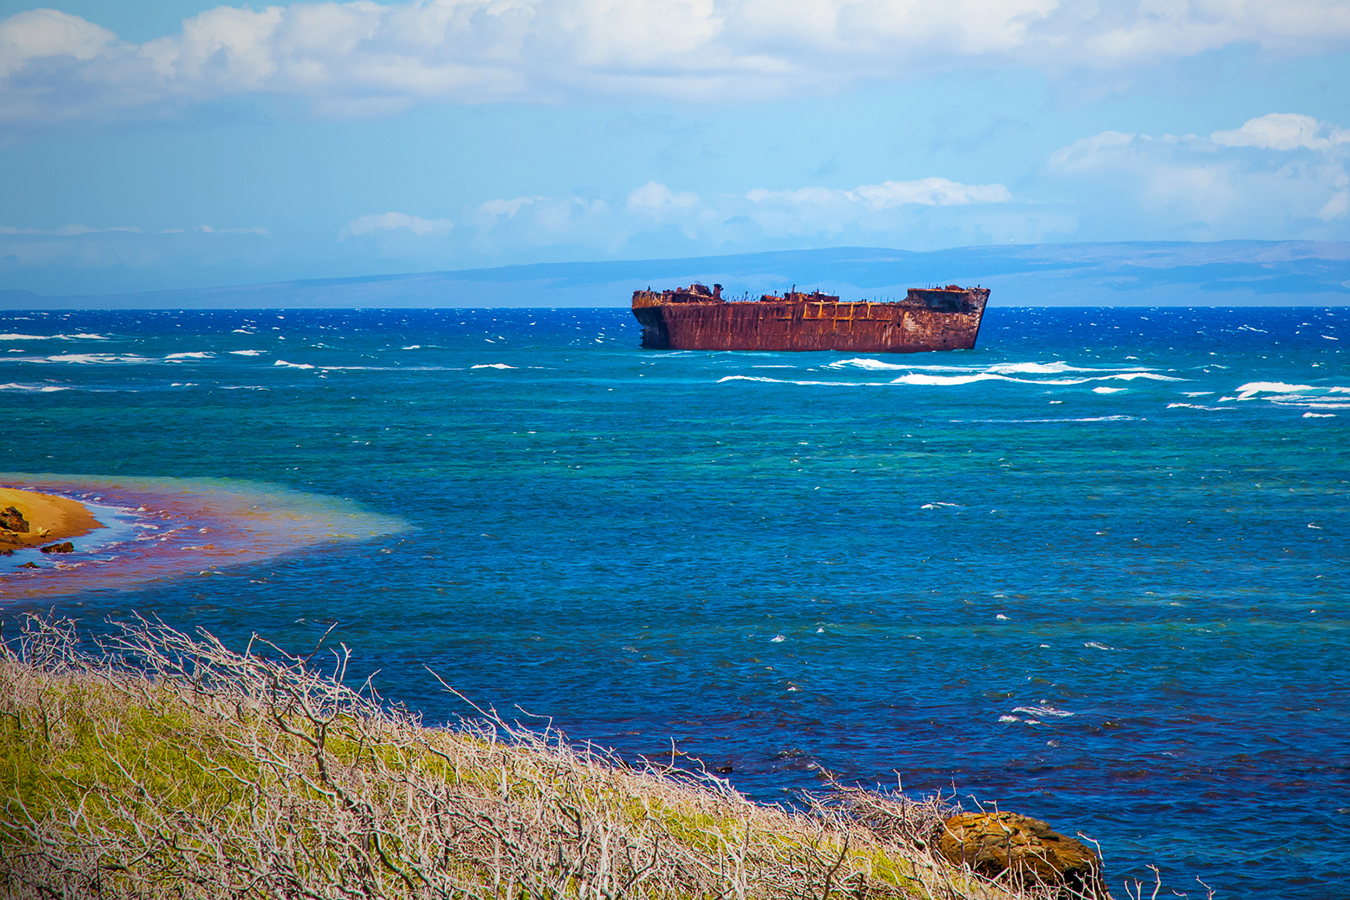 A picture of the shipwreck off the coast of Lanai